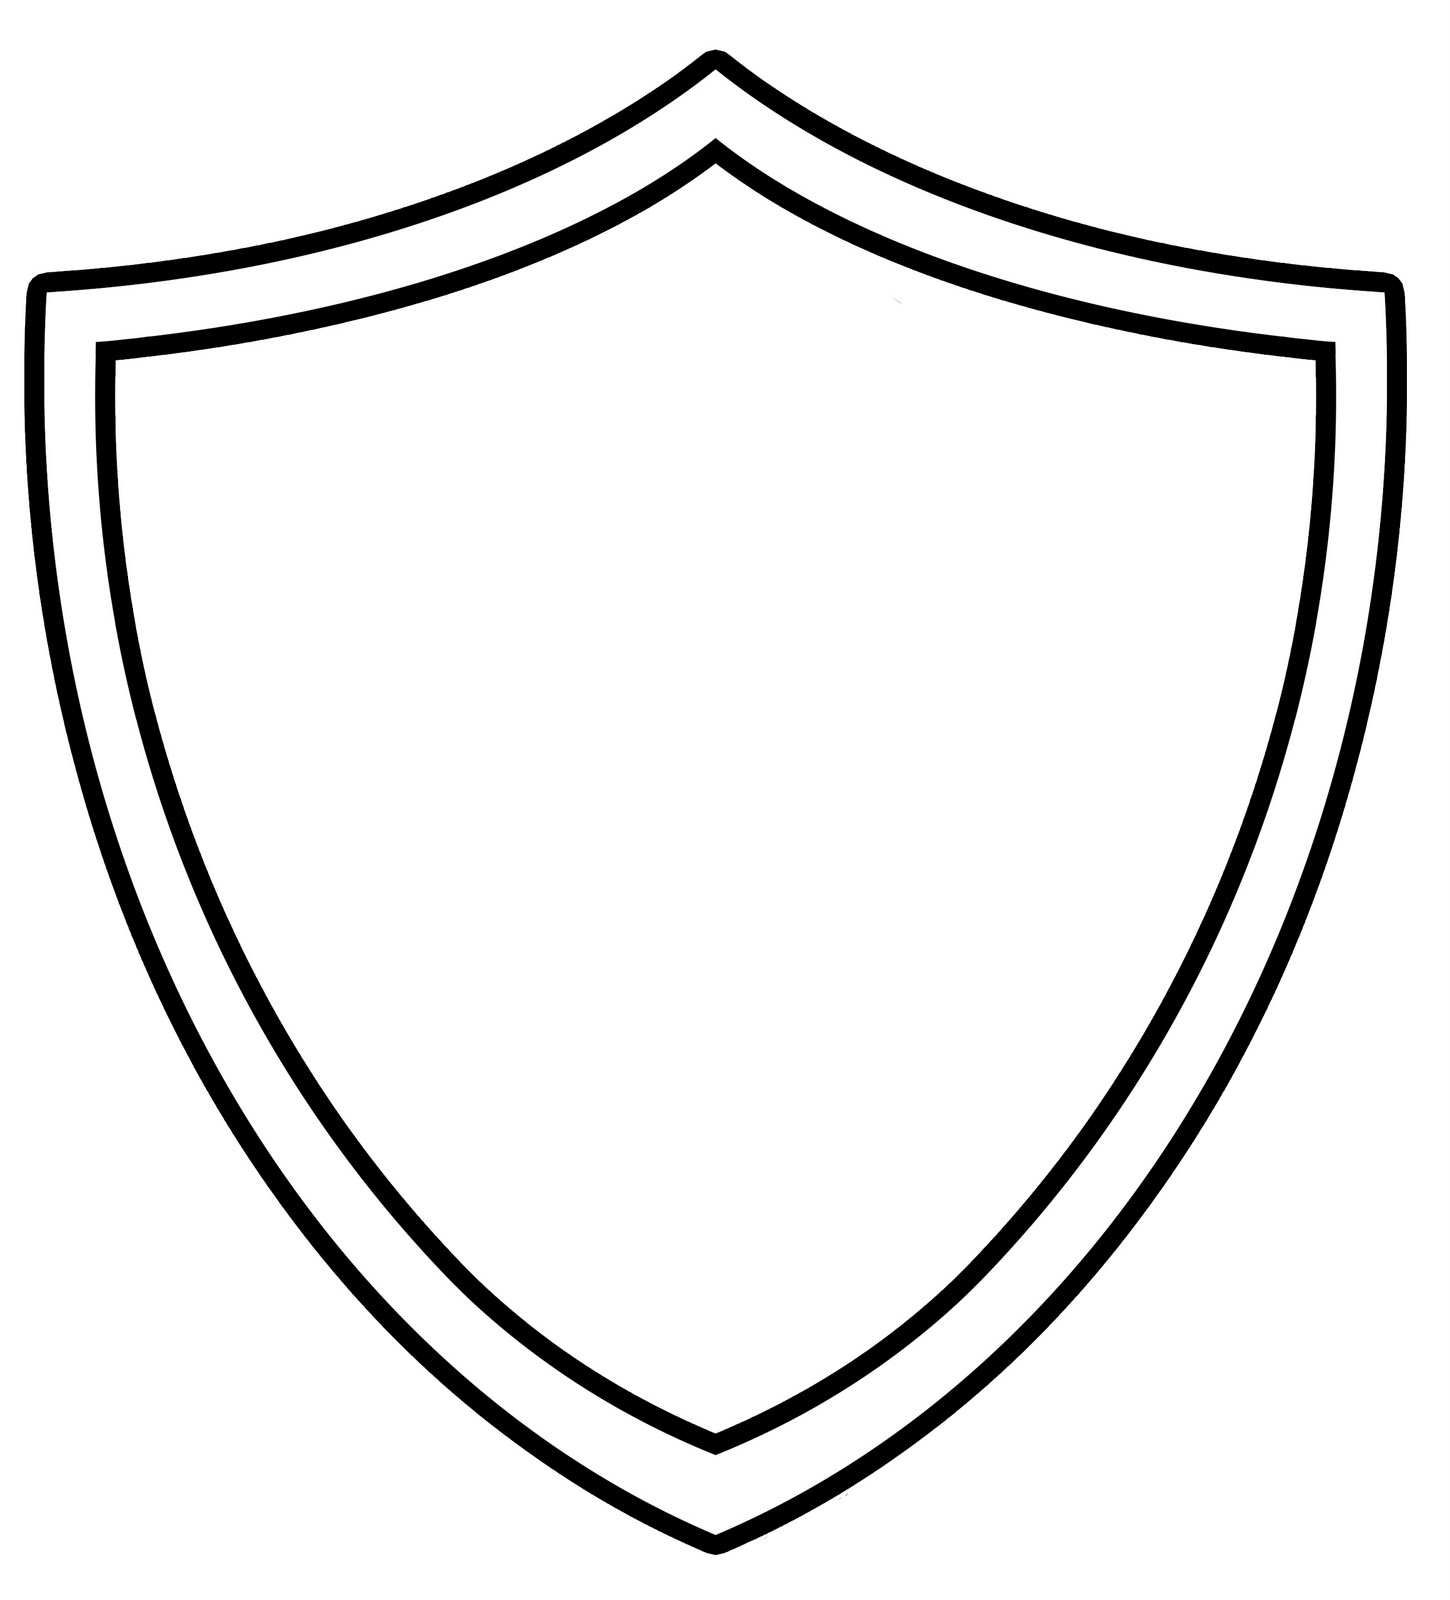 Shield Clipart Black And White | Clipart Library - Free Clipart Images